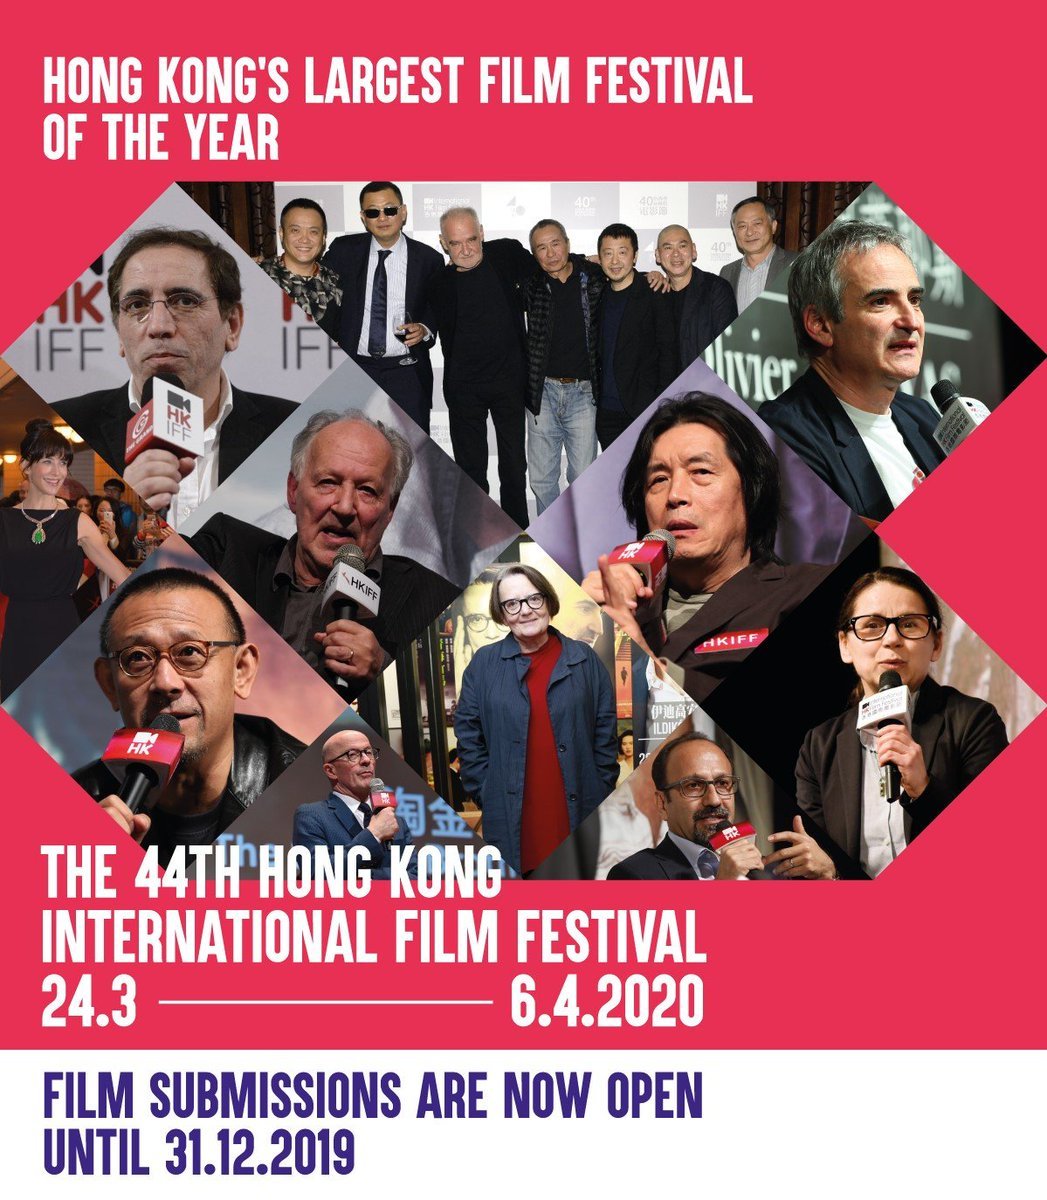 Hong Kong International Film Festival Society (@HKIFFS